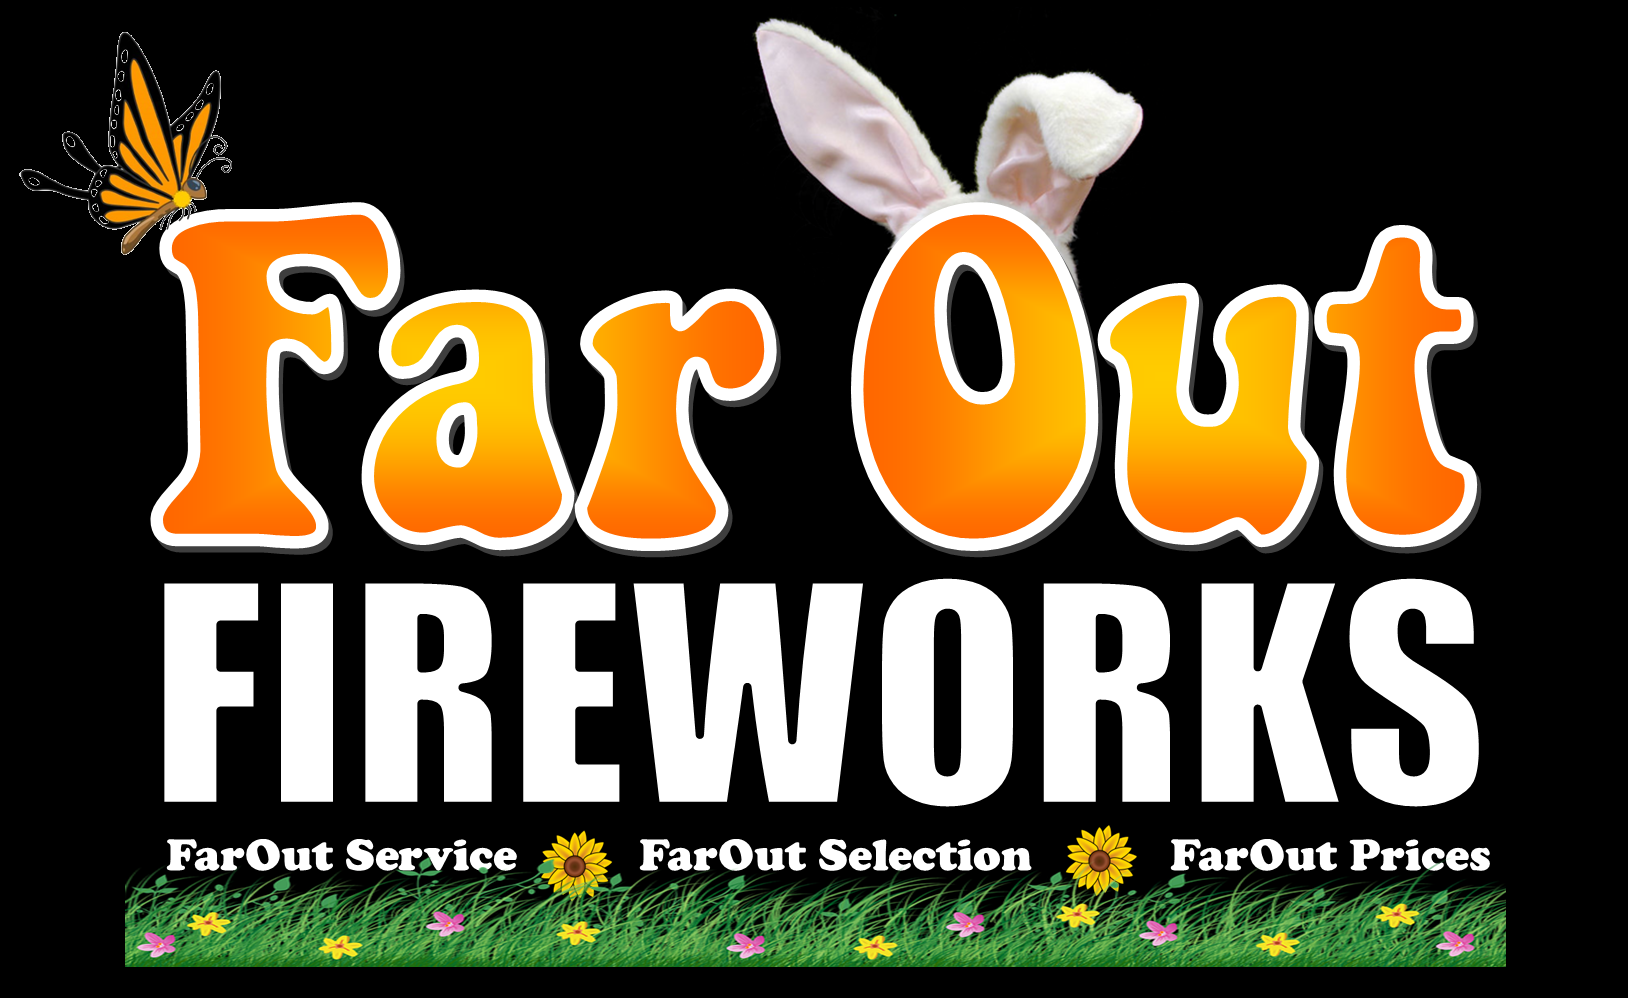 Farout Fireworks